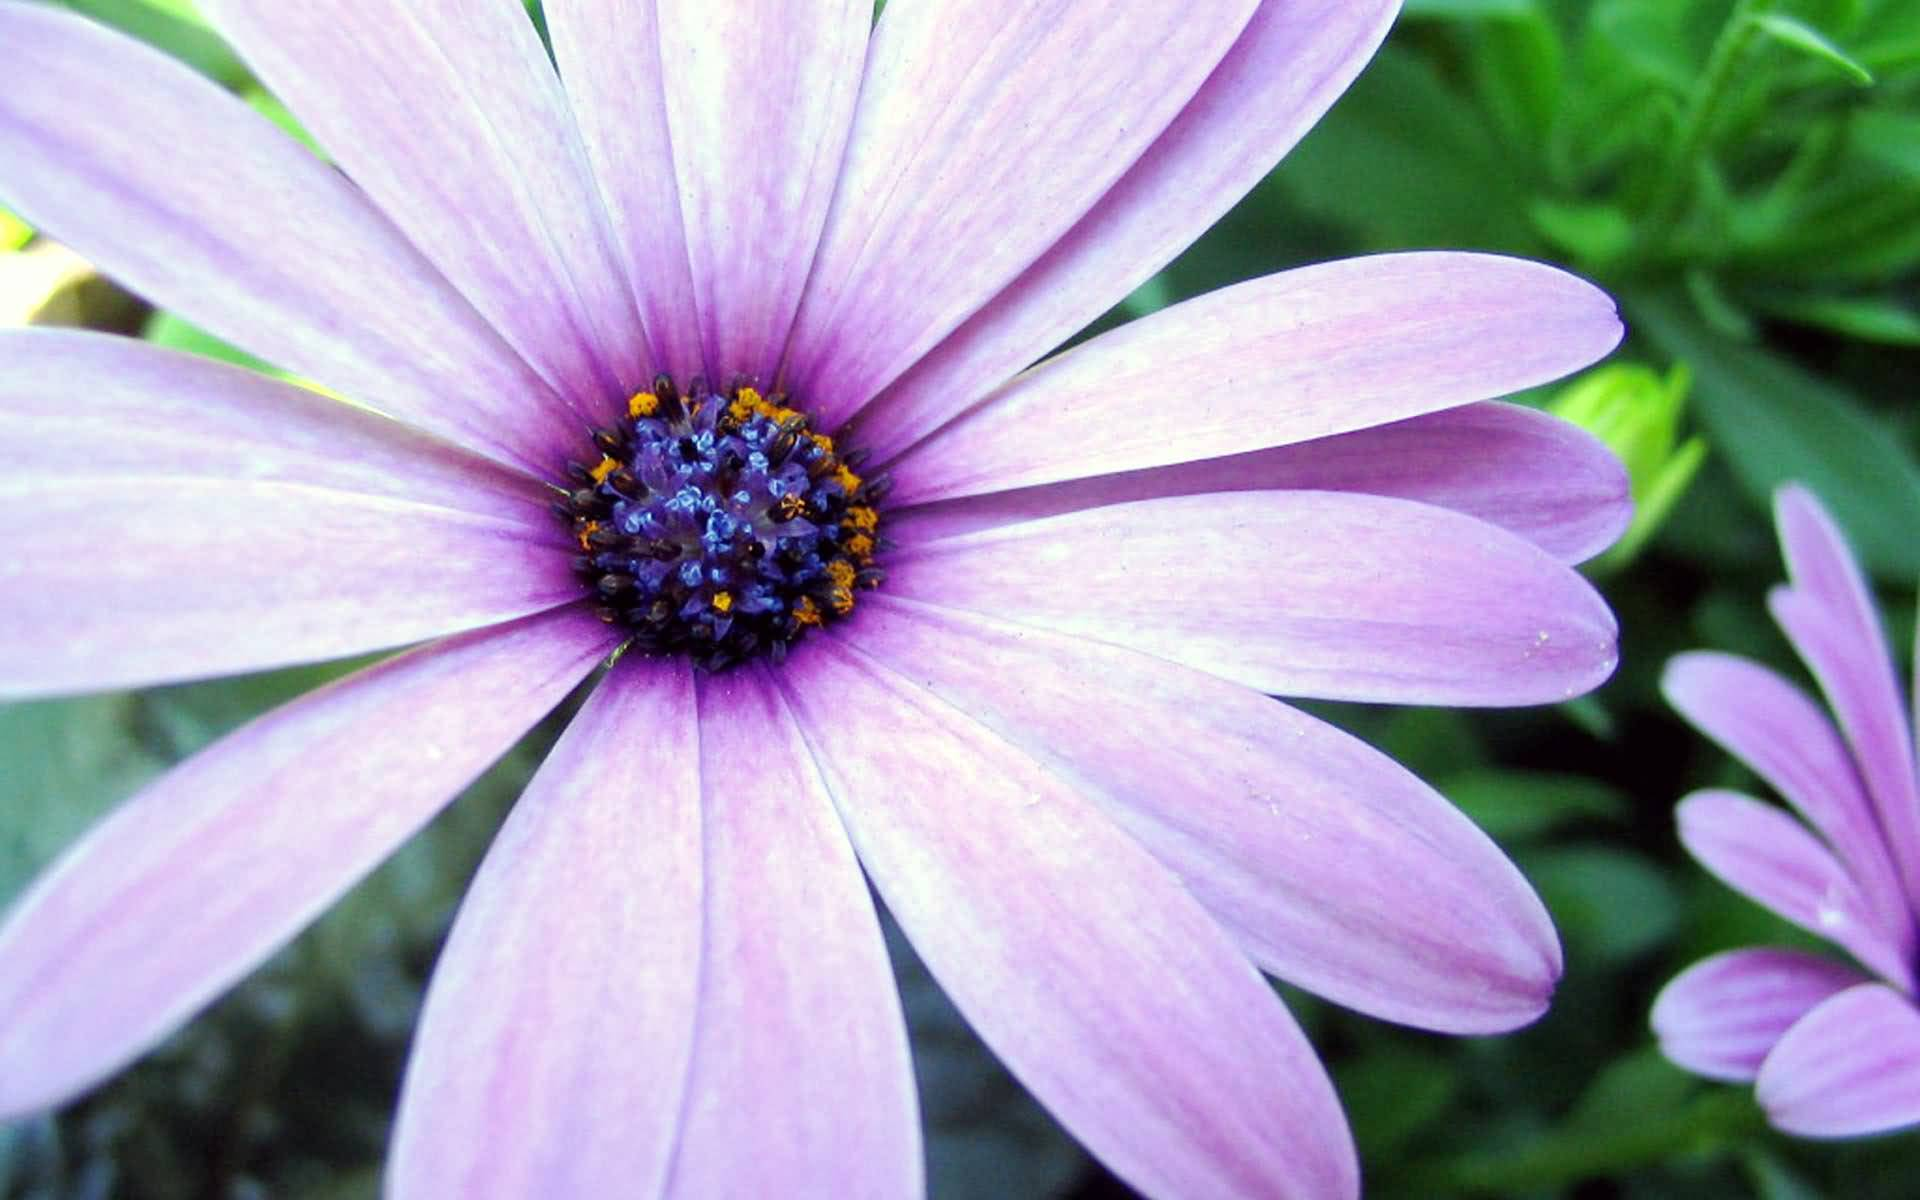 Outstanding white anemone with center blue flower image coolest purple aster flower with blue center izmirmasajfo